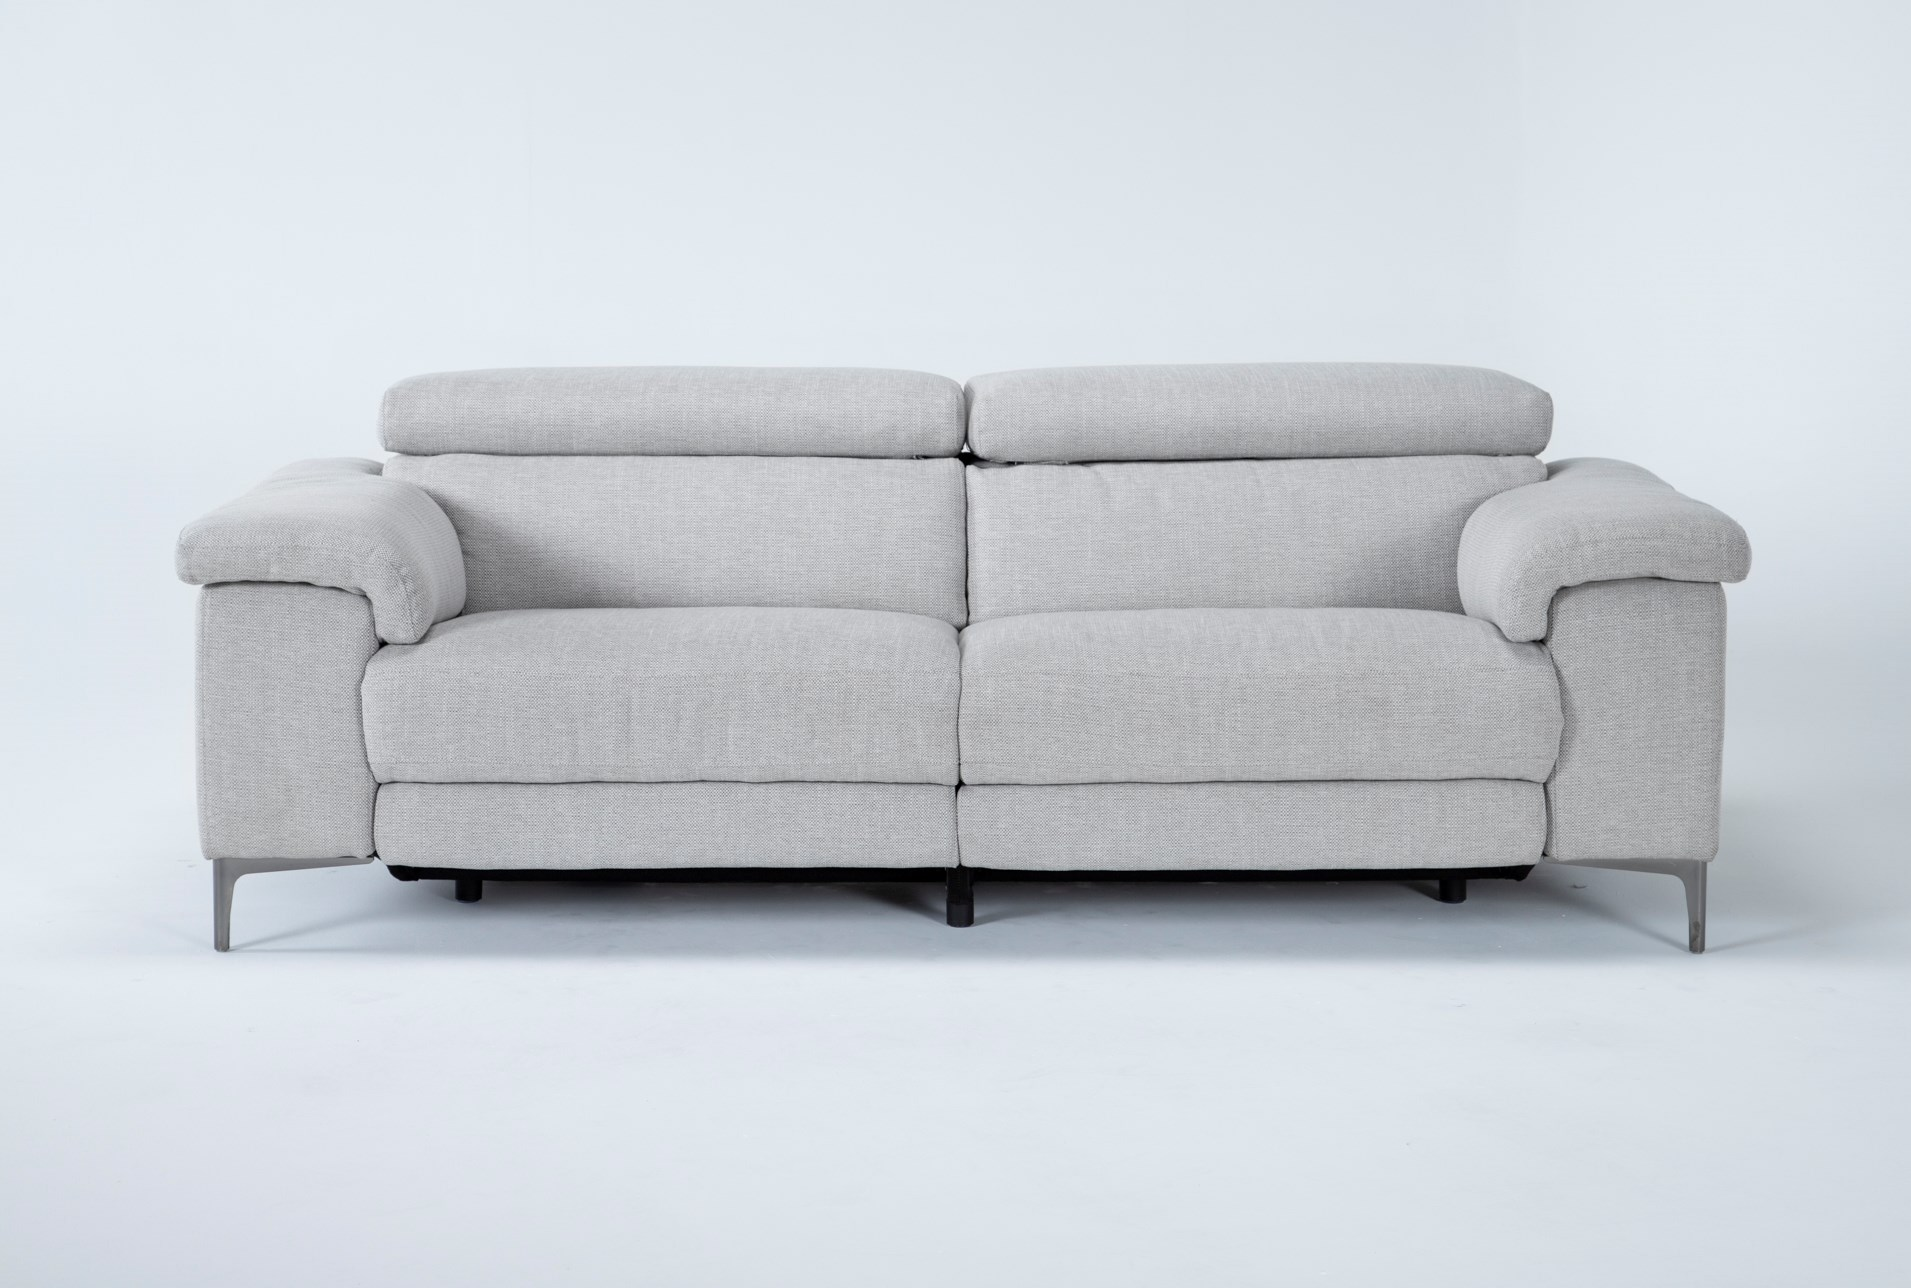 Talin Linen 85 Power Reclining Sofa, Fabric Living Room Sets With Recliner